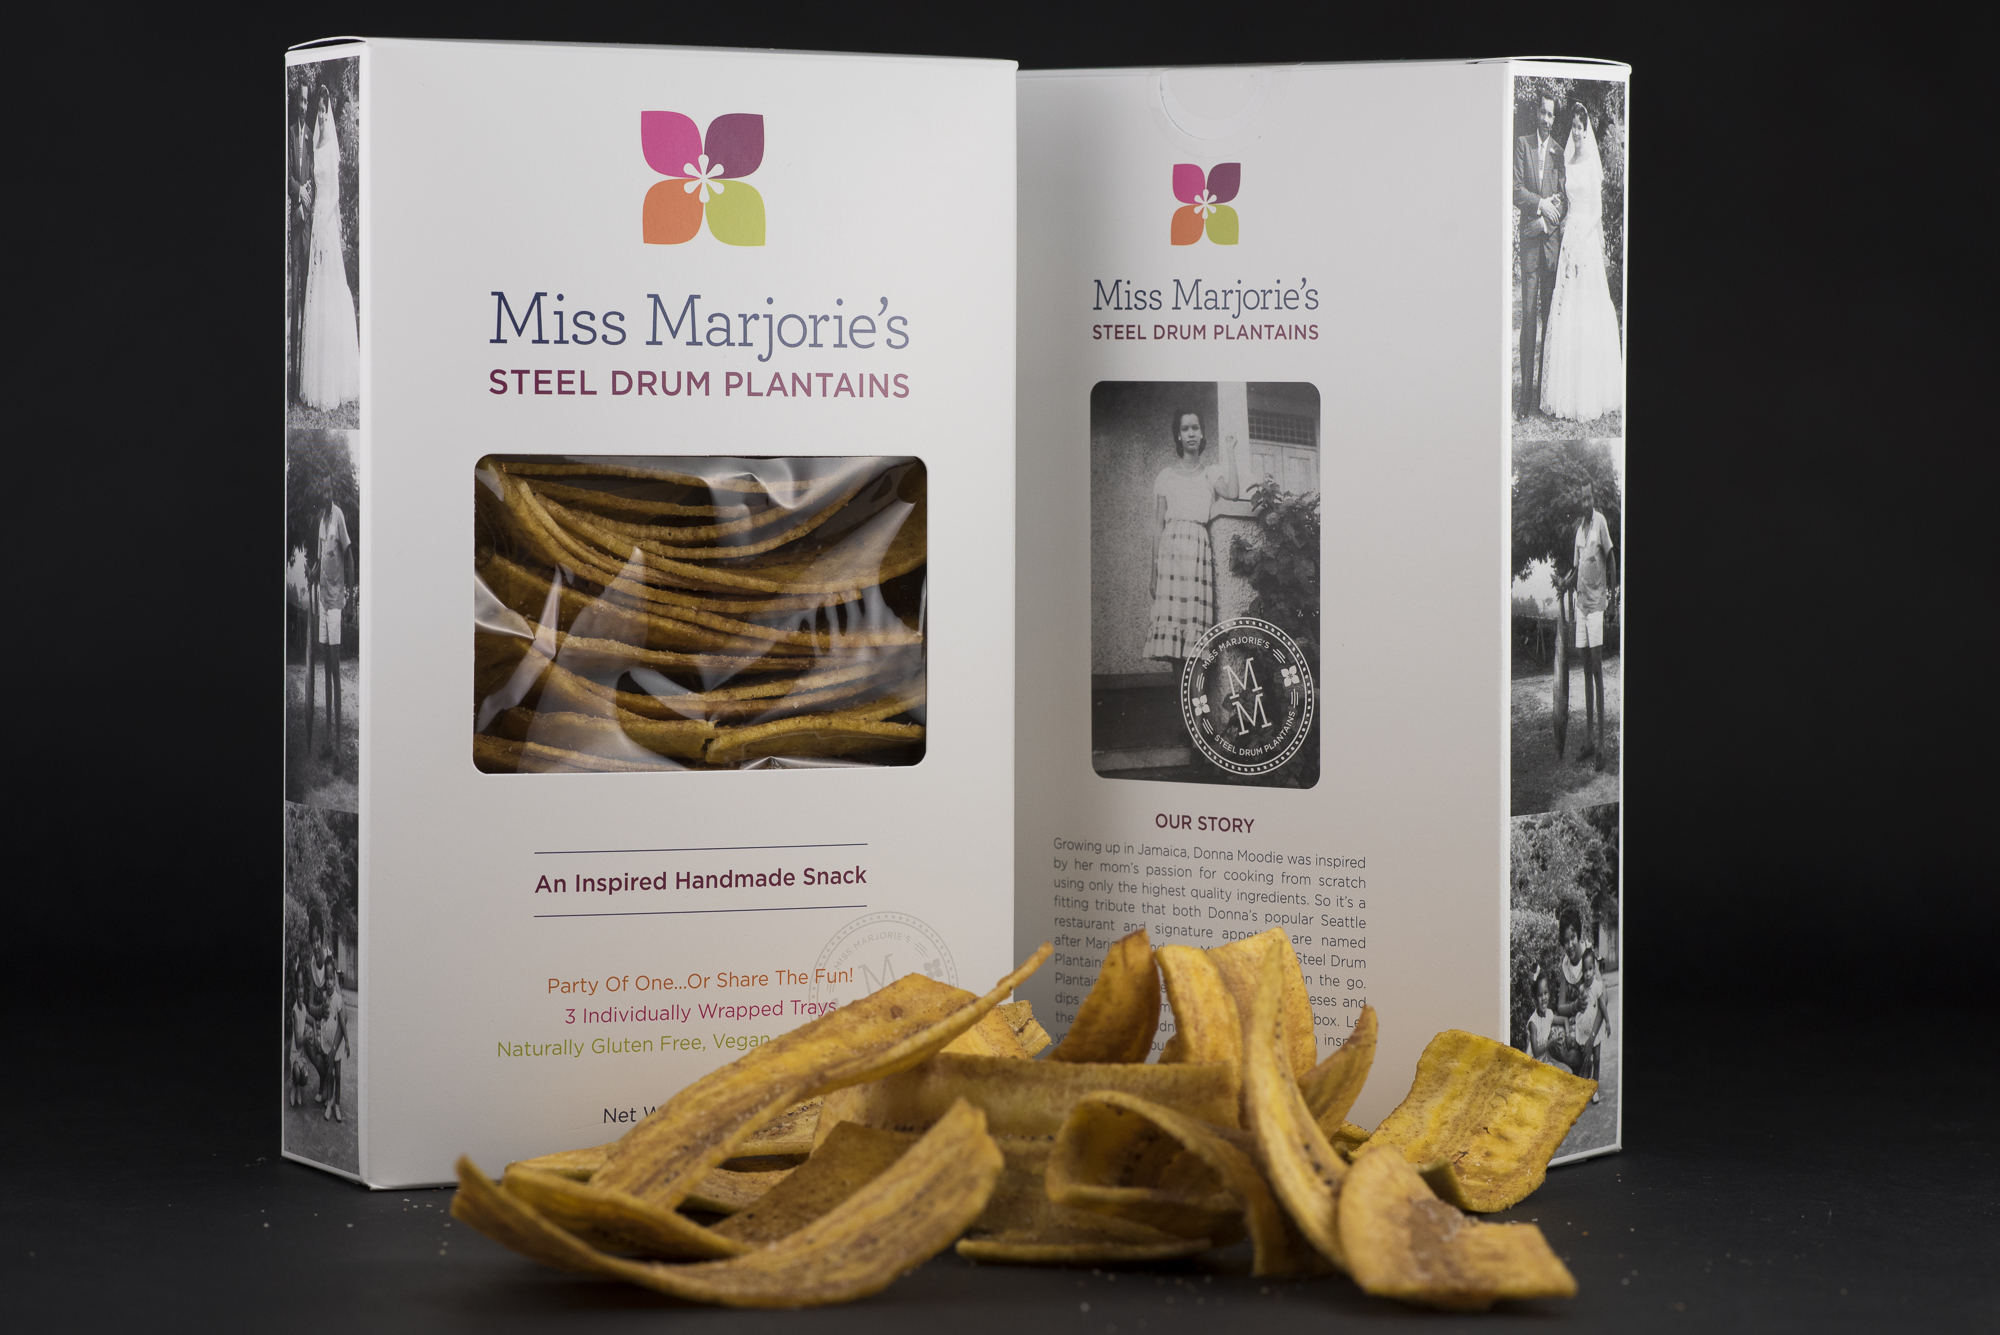 Miss Marjorie's: Steel Drum Plantains